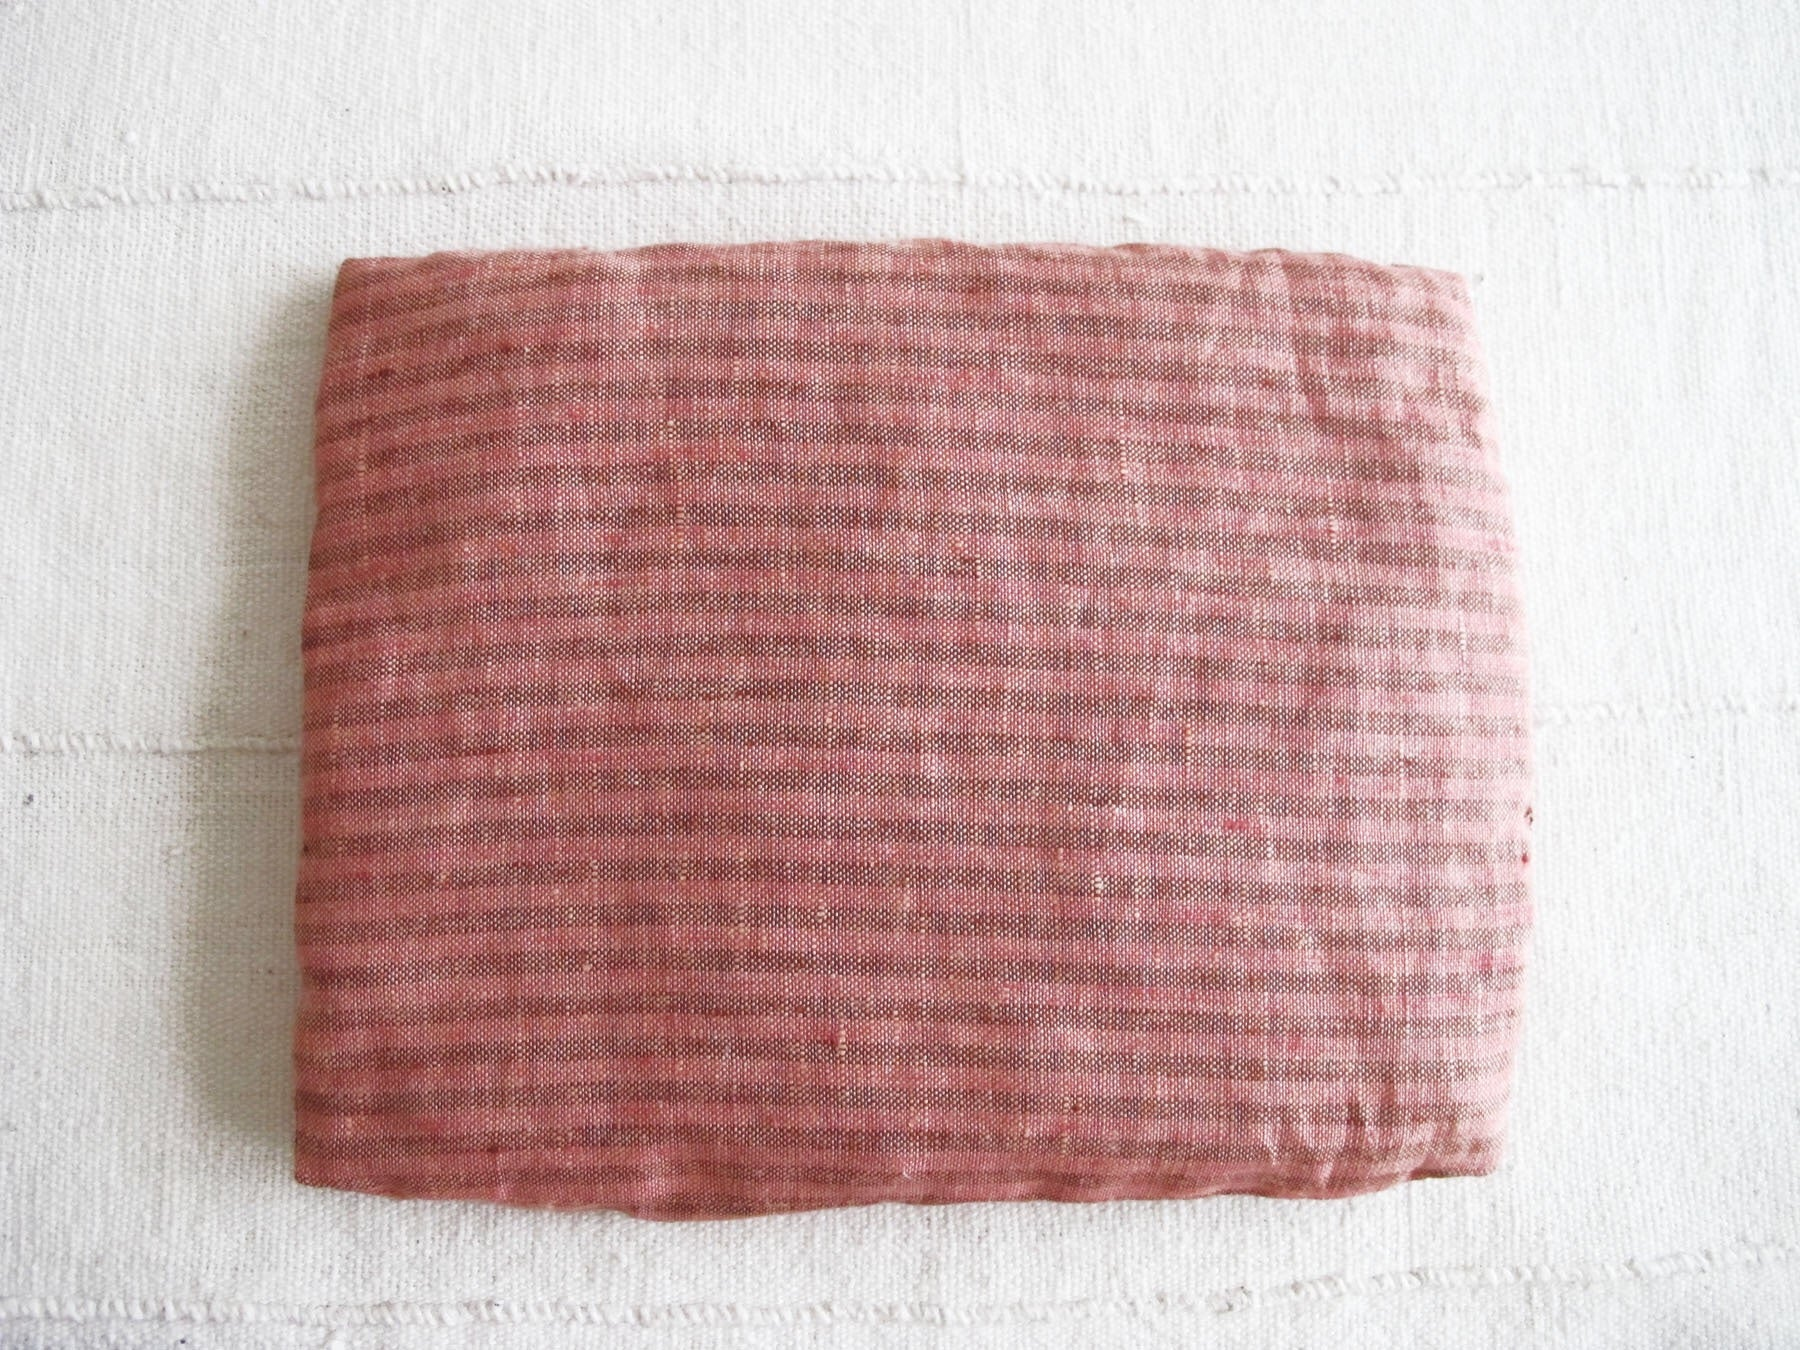 WARM/COOL PILLOW, cherry pit filling